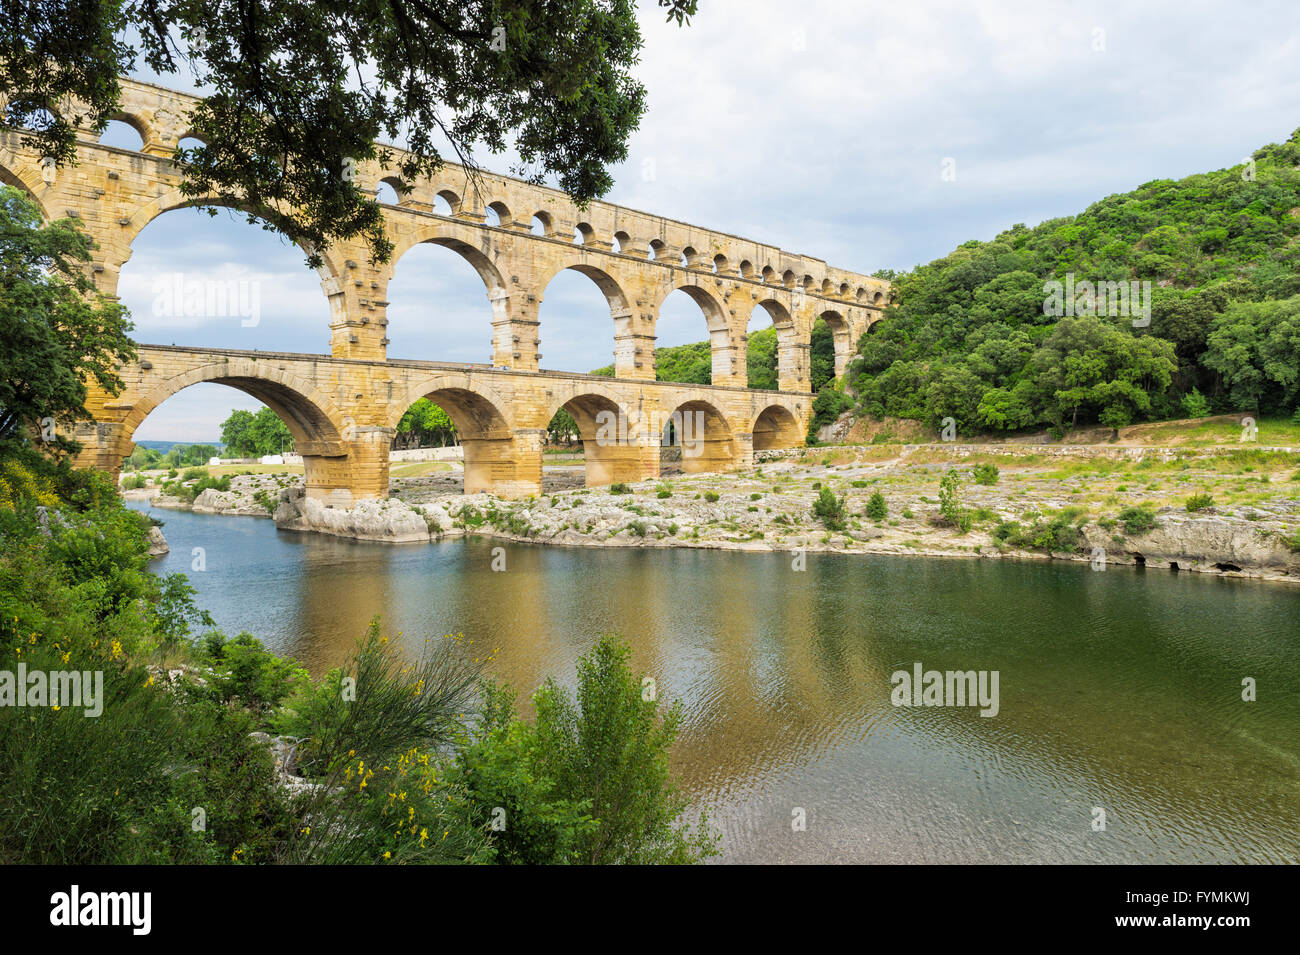 Pont du Gard, Languedoc Roussillon region, France, Unesco World Heritage Site - Stock Image